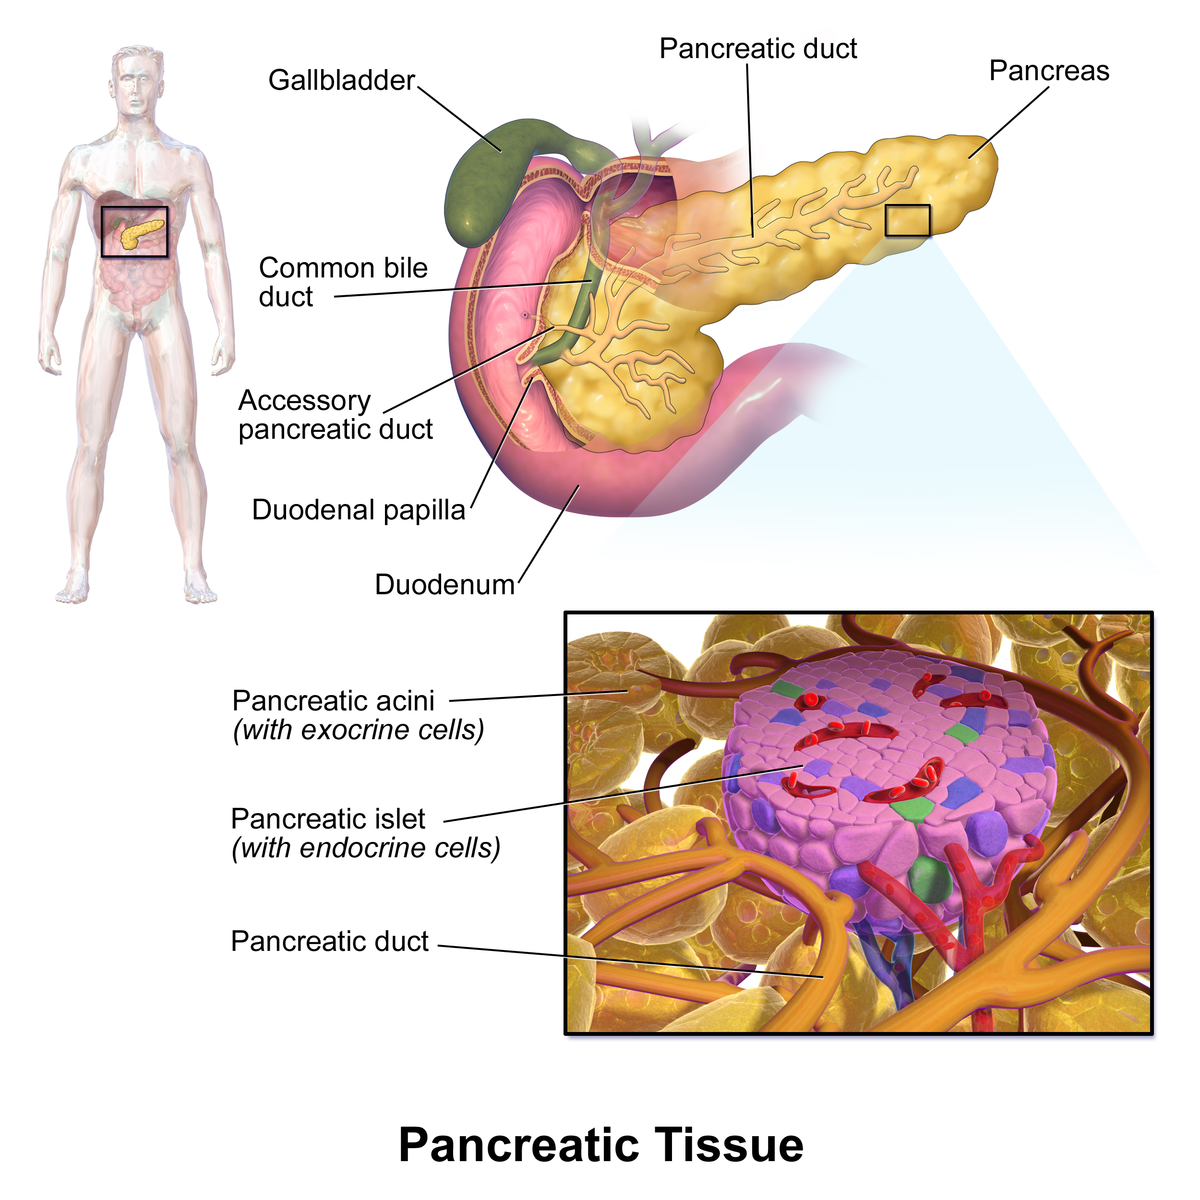 Mouse Dissection Pancreas Gallbladder Diagram Block And Schematic